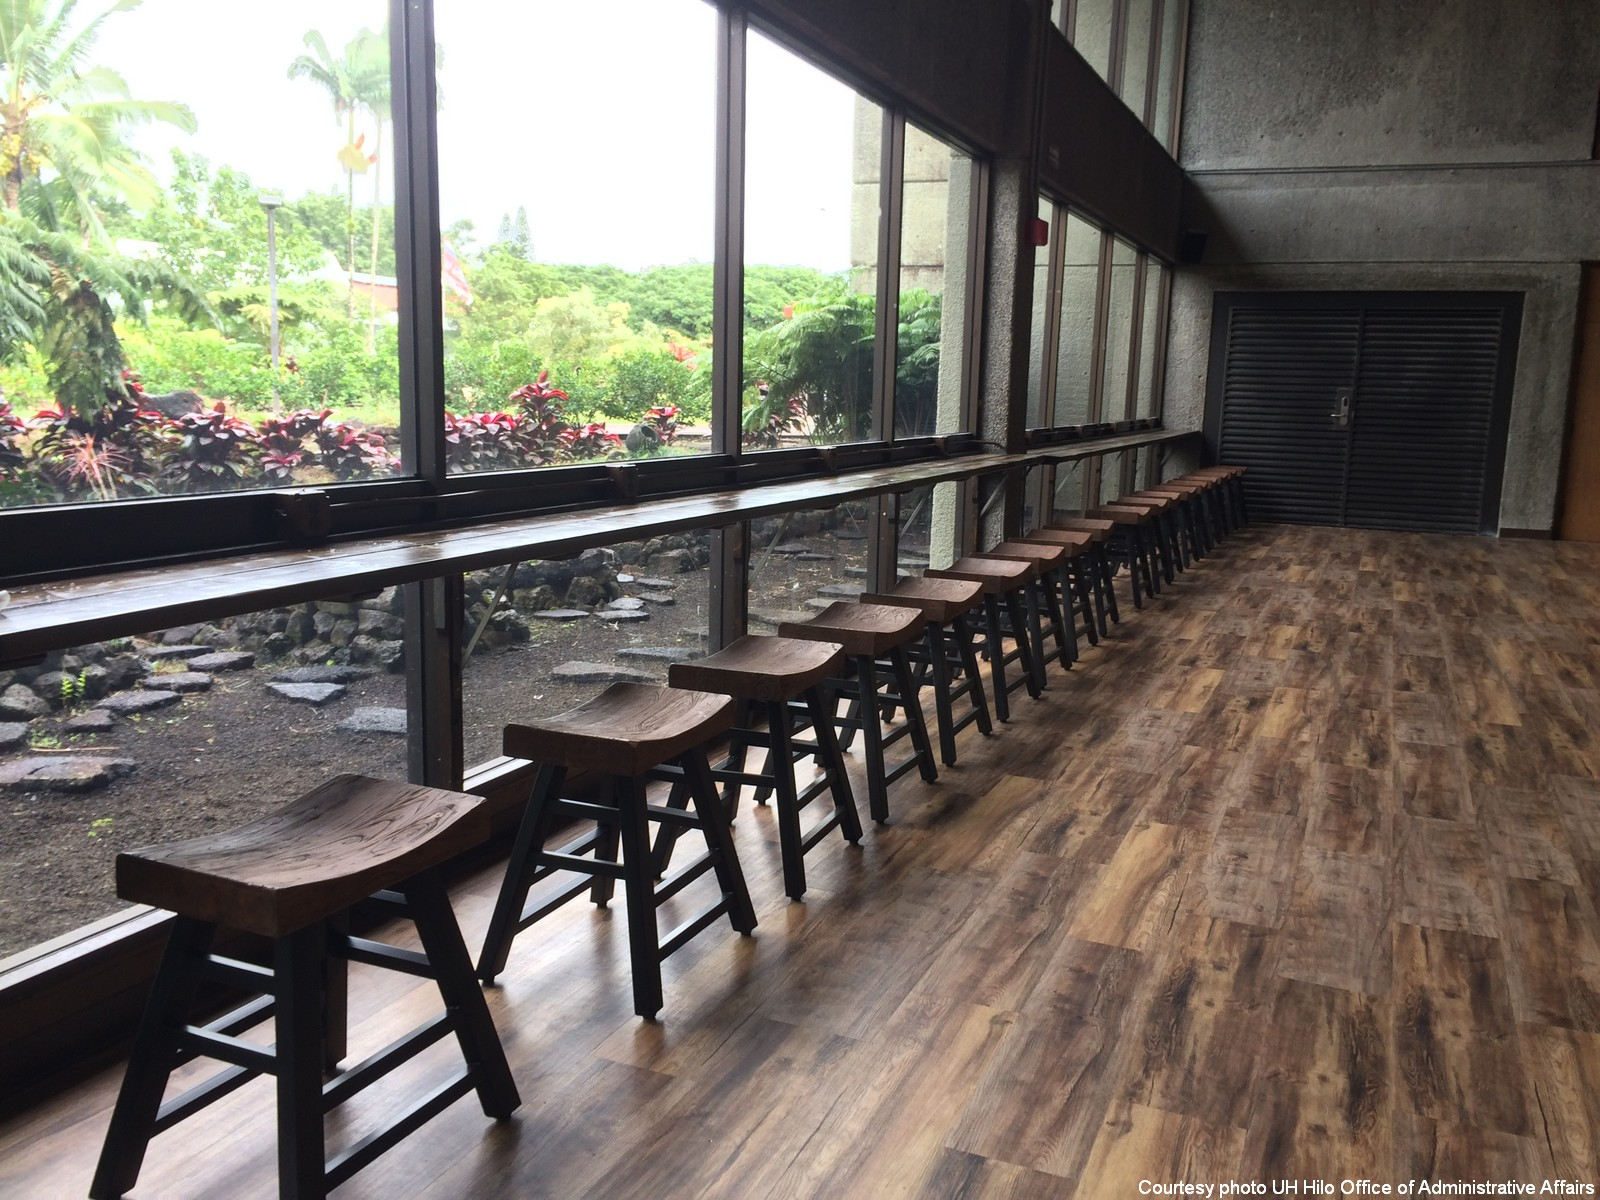 Rustic Stools Lined Up At New Counter Overlooking Gardens